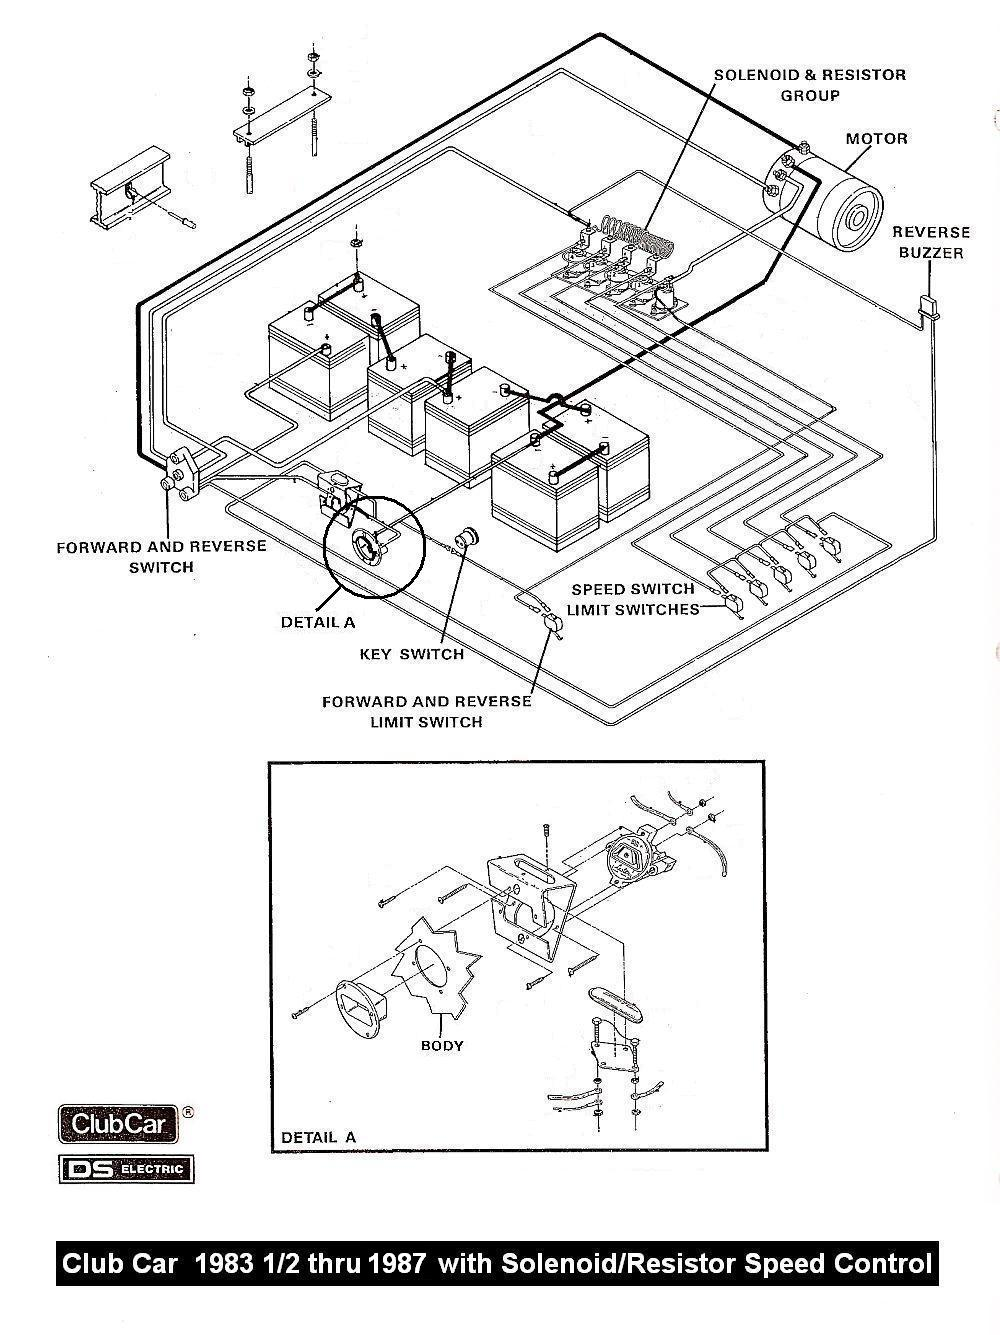 1984 club car gas golf cart wiring diagram 3 19 jaun bergbahnen de \u20221984 club car gas golf cart wiring diagram wiring diagram rh 7 zeevissendewatergeus nl 86 club car wiring diagram gas club car golf cart lights wiring with